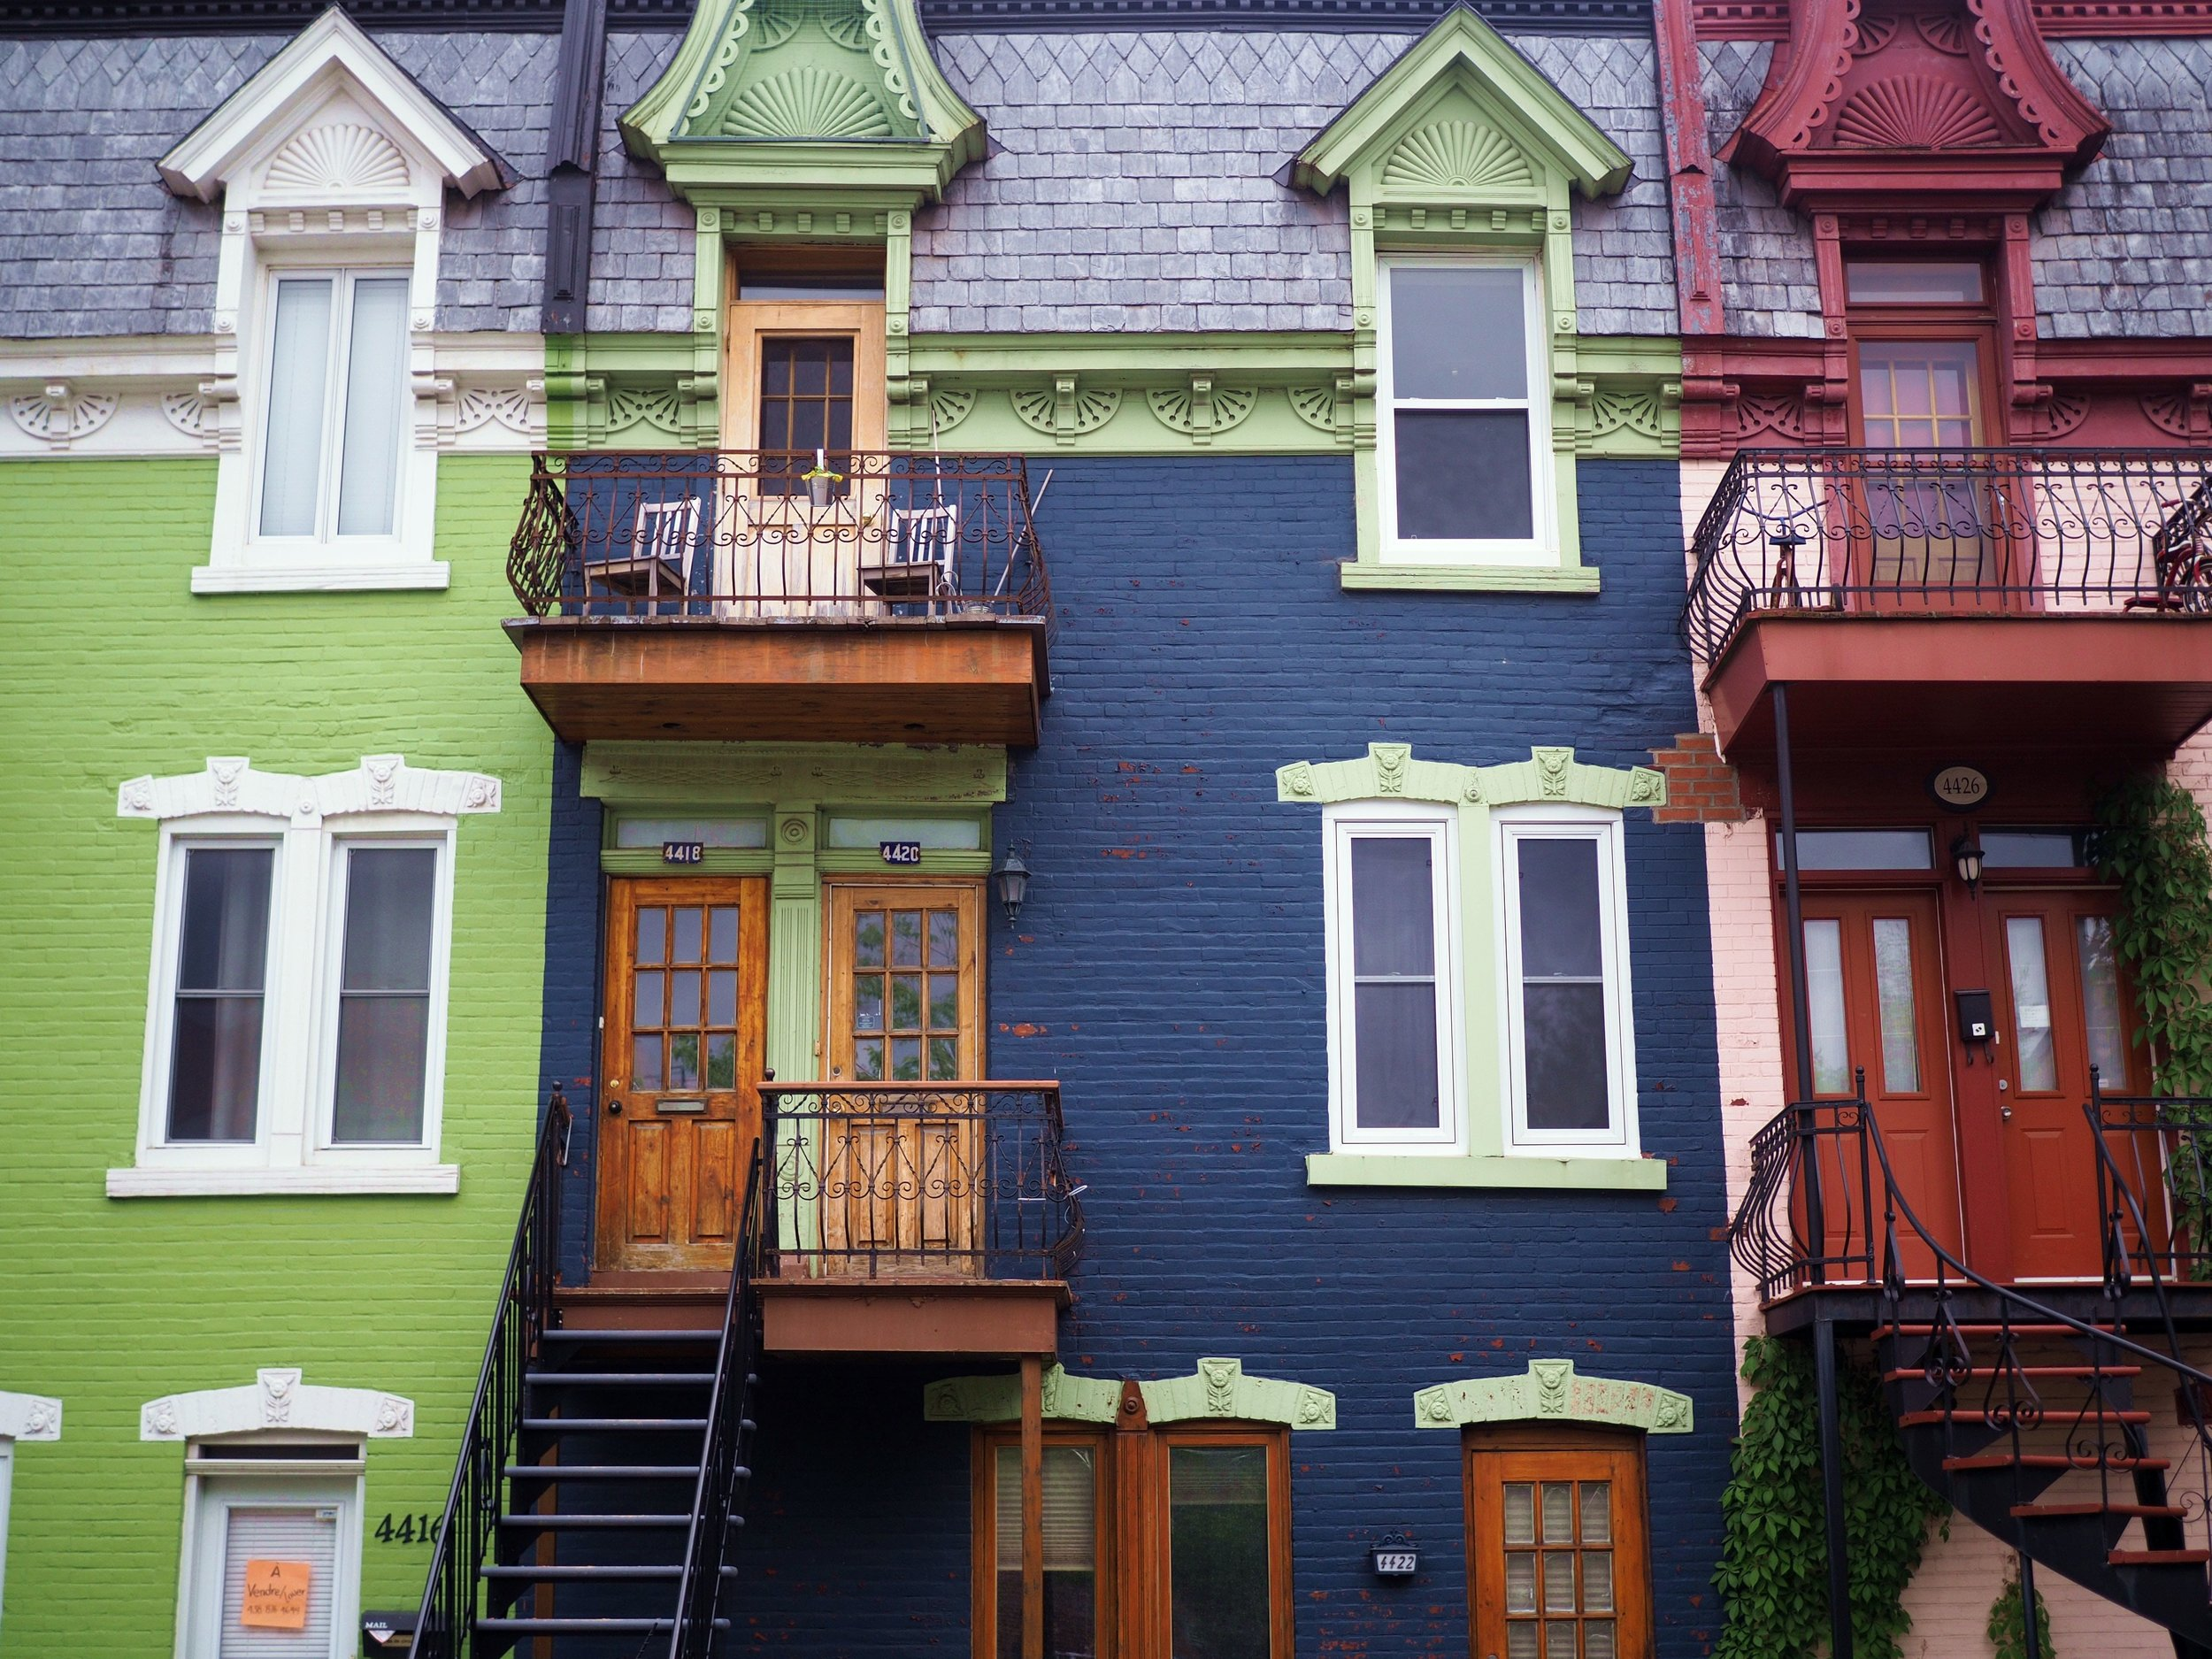 places-to-go-in-montreal-quebec